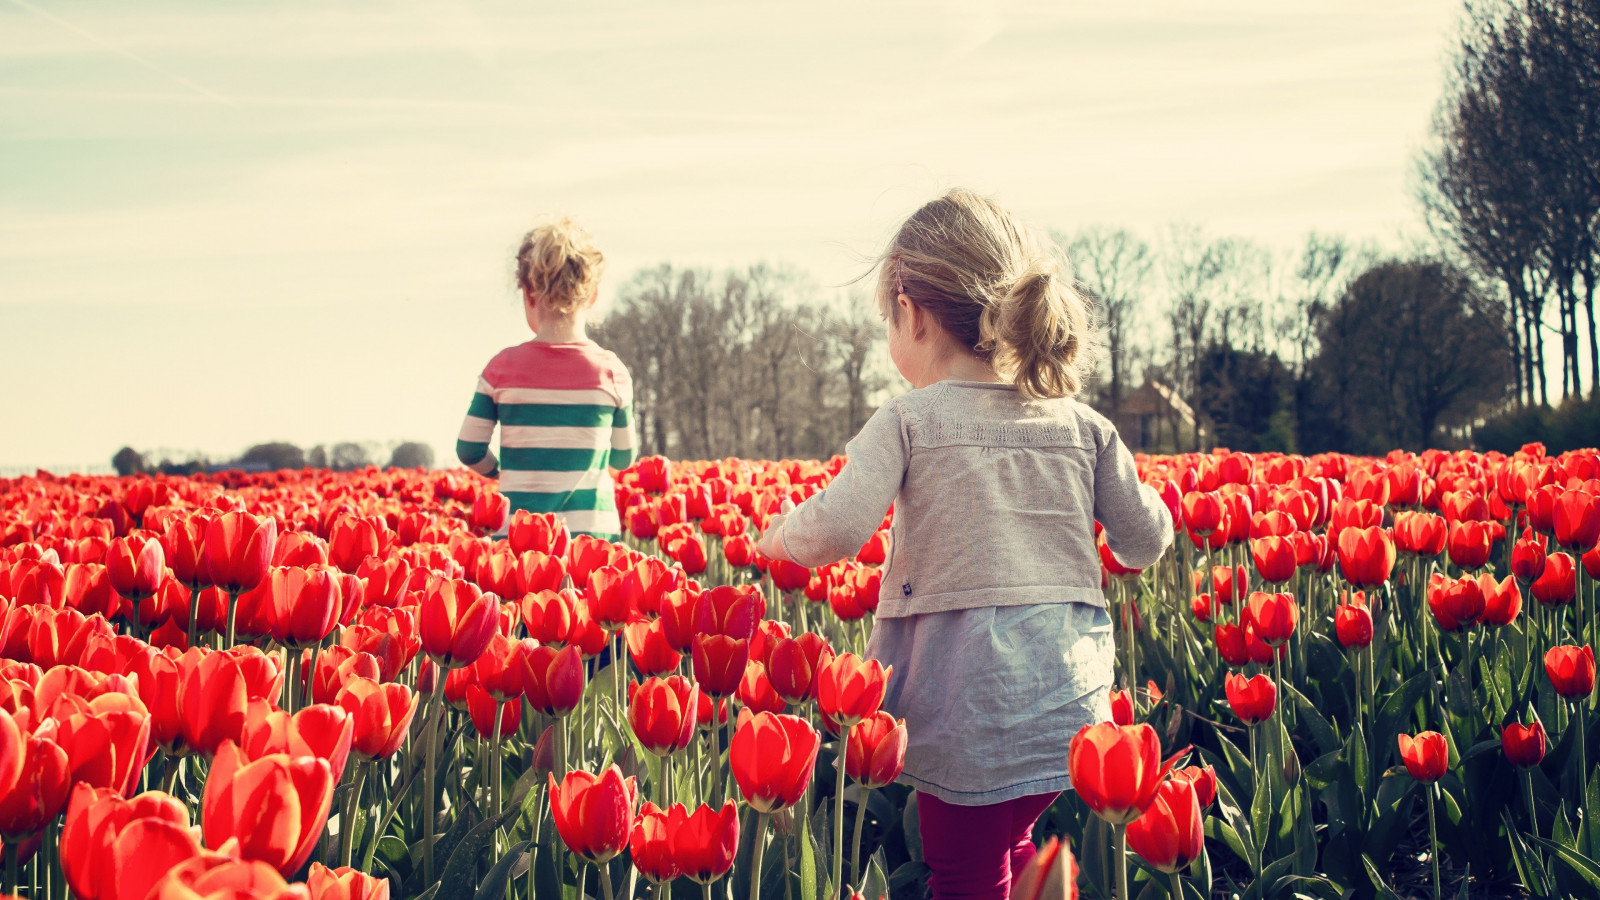 Children in the land with tulips wallpaper 1600x900